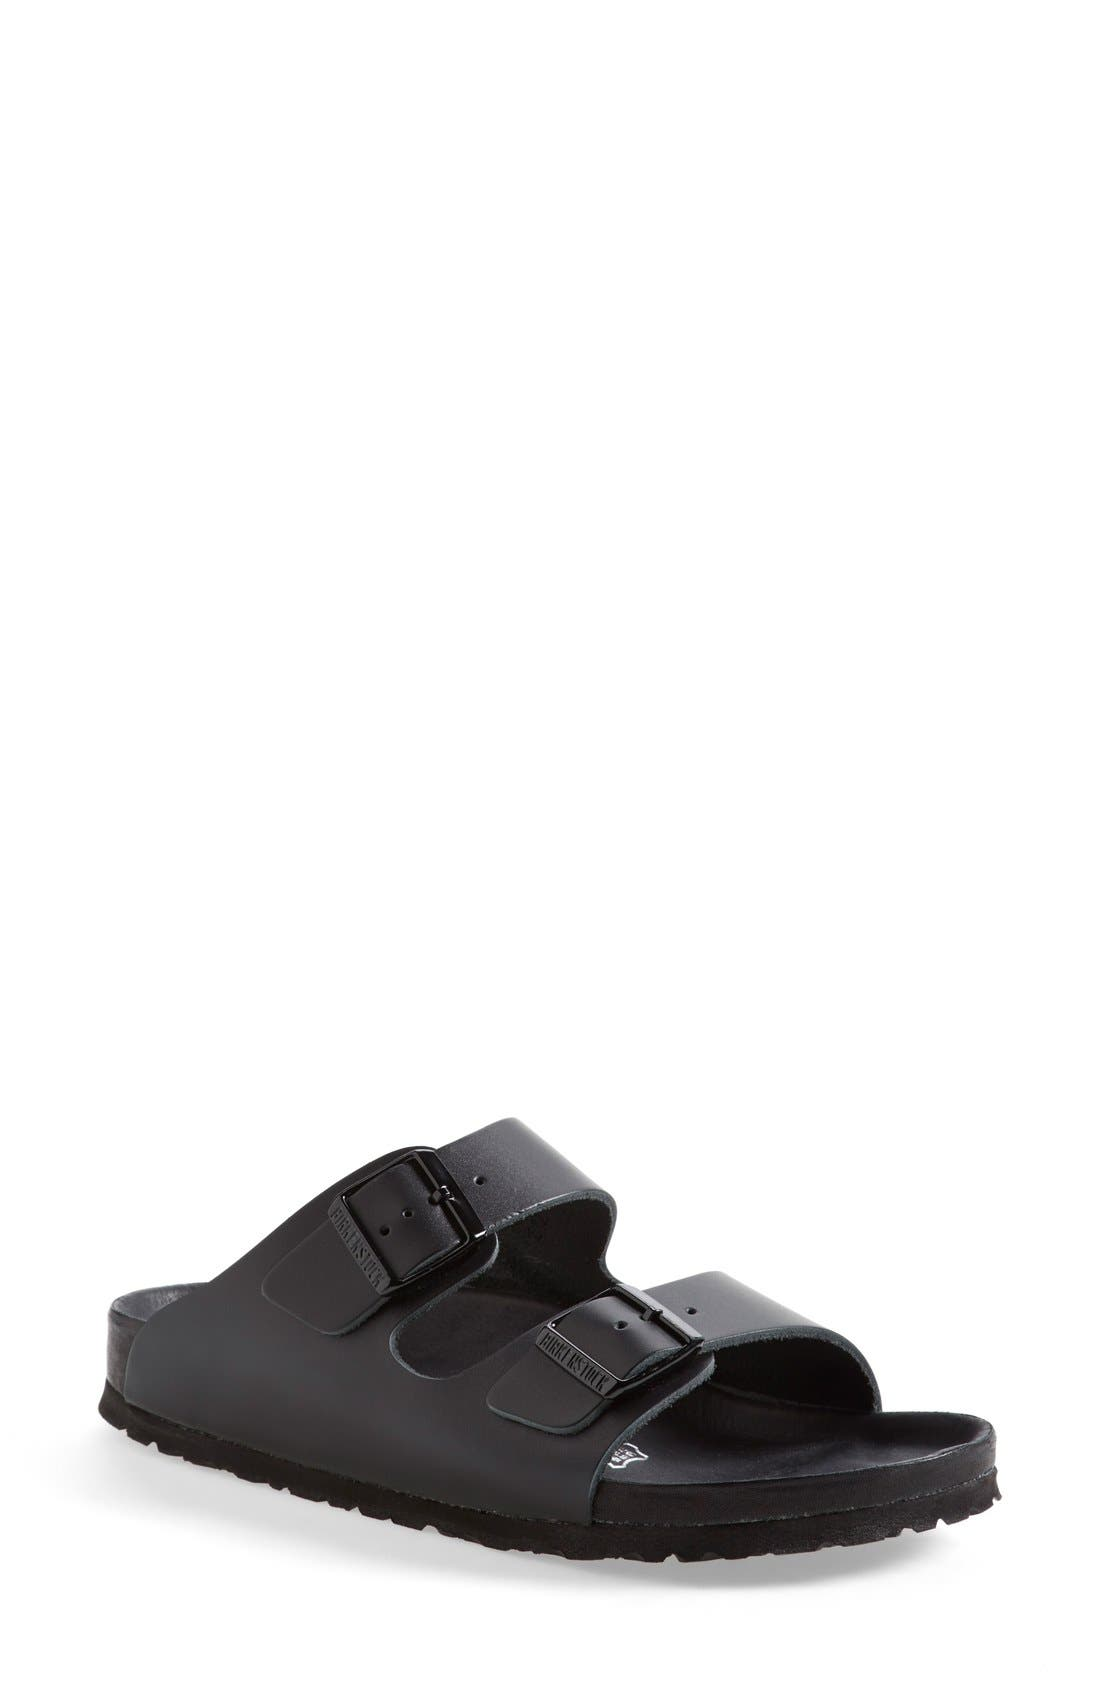 Birkenstock 'Monterey' Leather Sandal